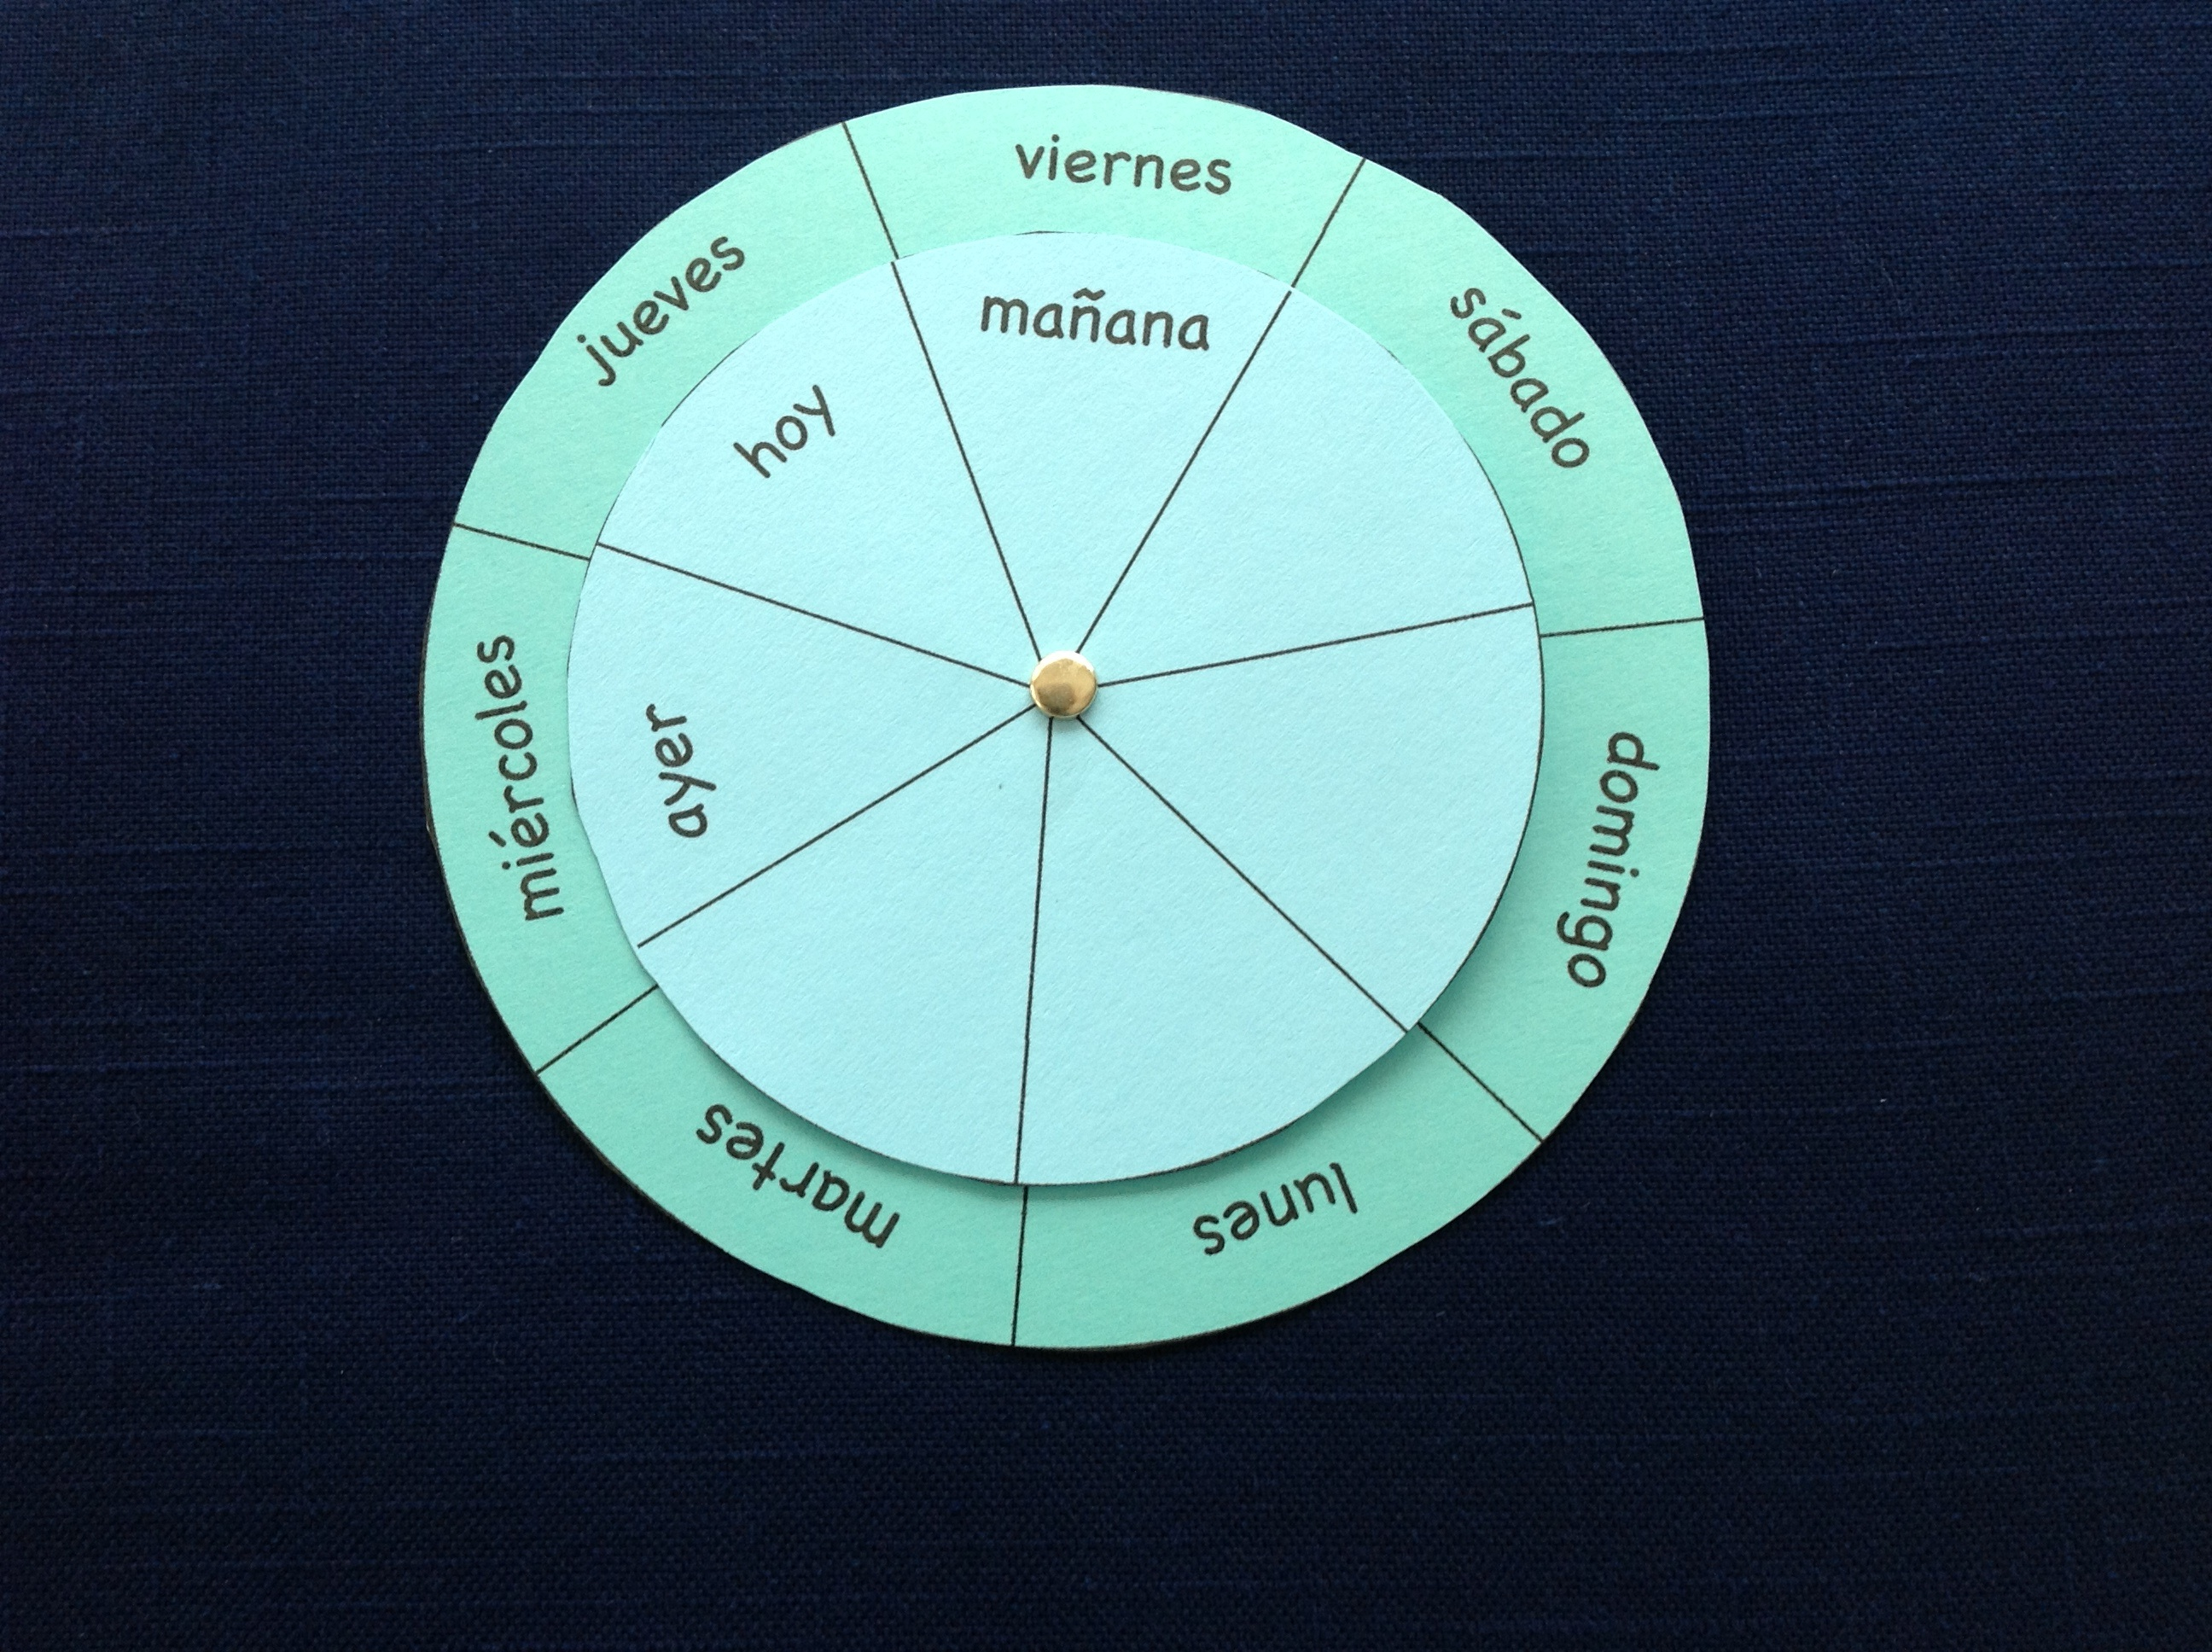 spanish days of the week wheel